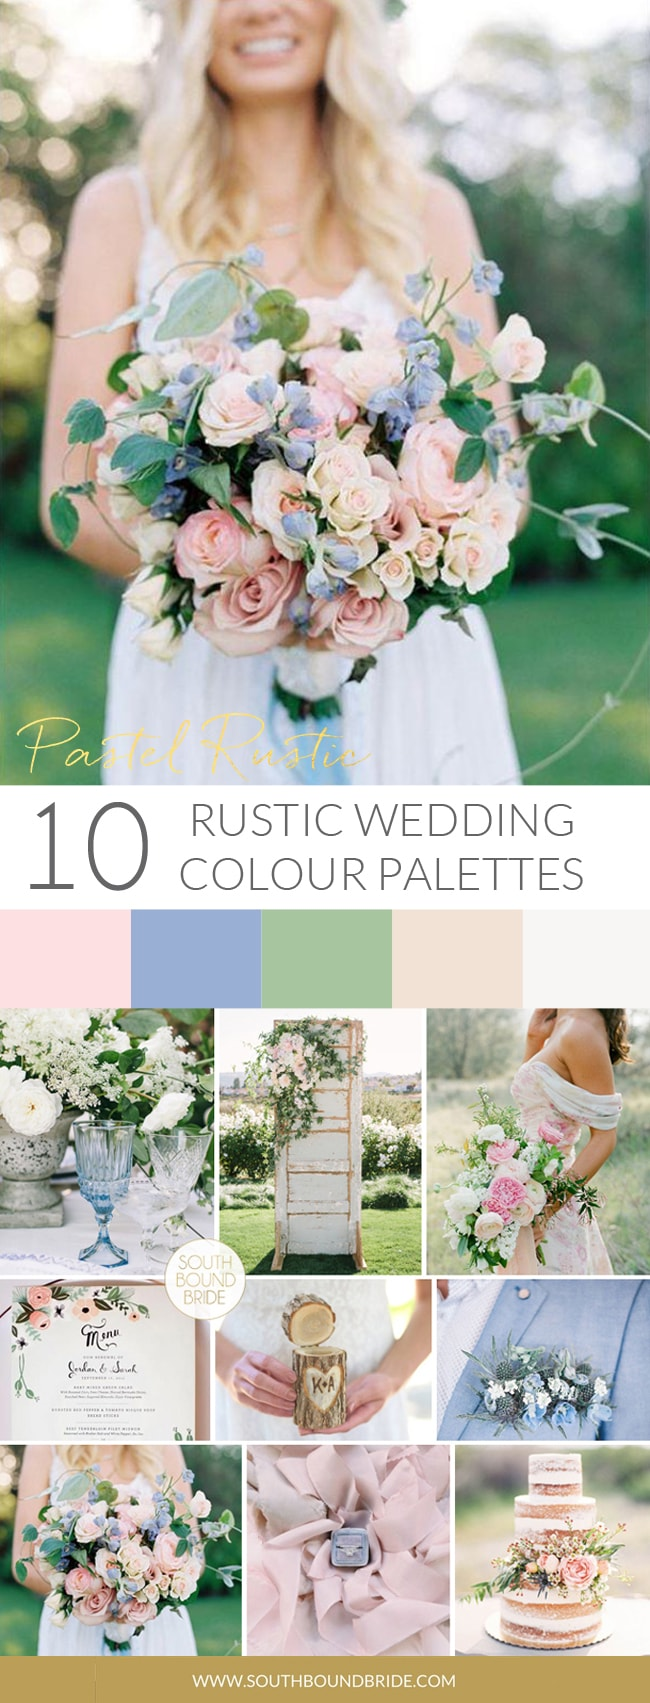 Pastel Rustic Wedding Palette | SouthBound Bride